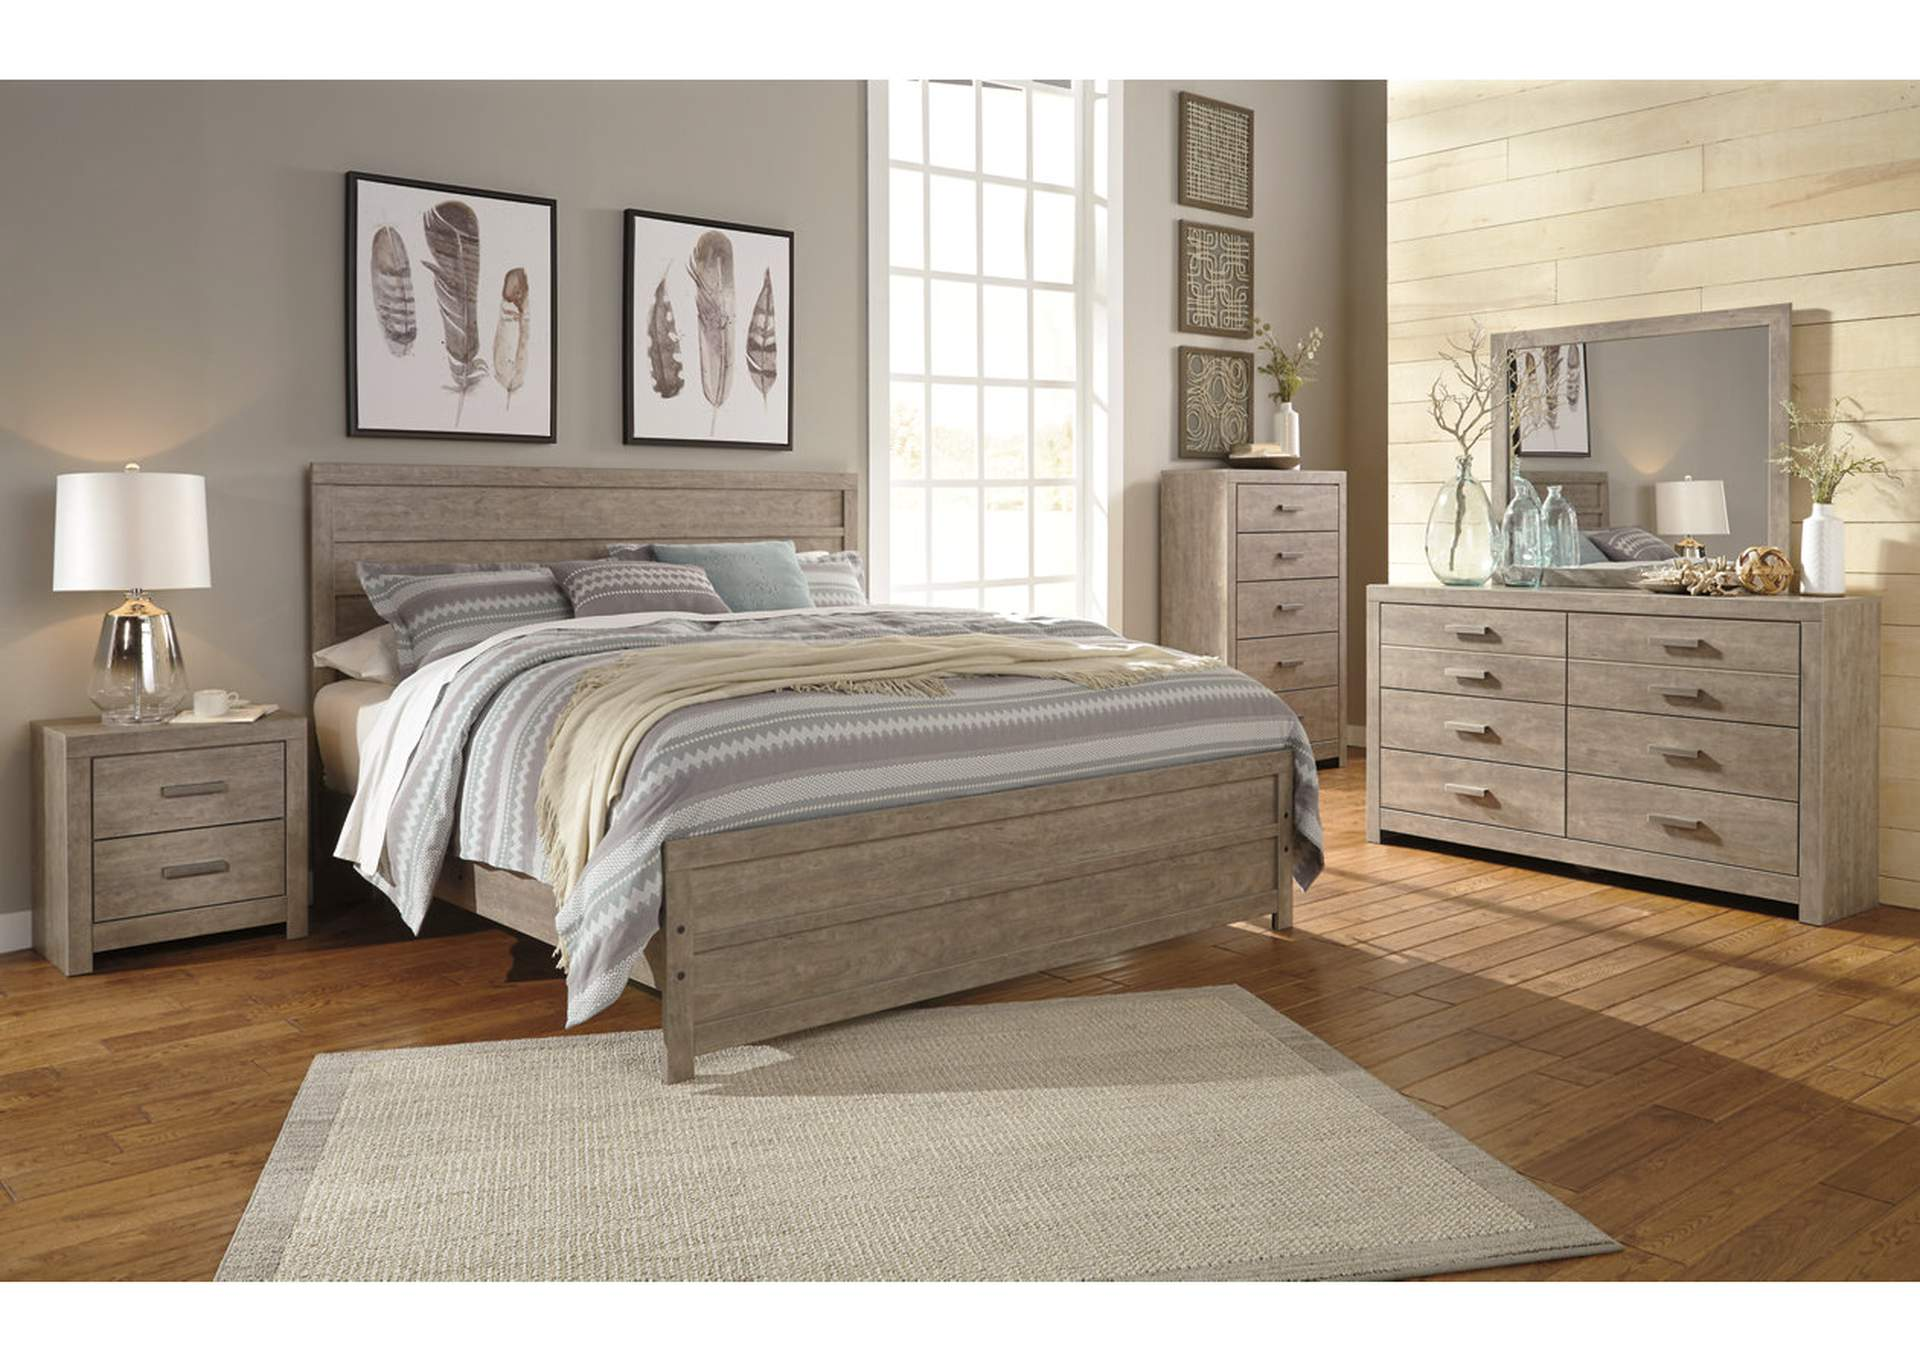 Culverbach Gray Queen Panel Bed w/Dresser & Mirror,Signature Design By Ashley